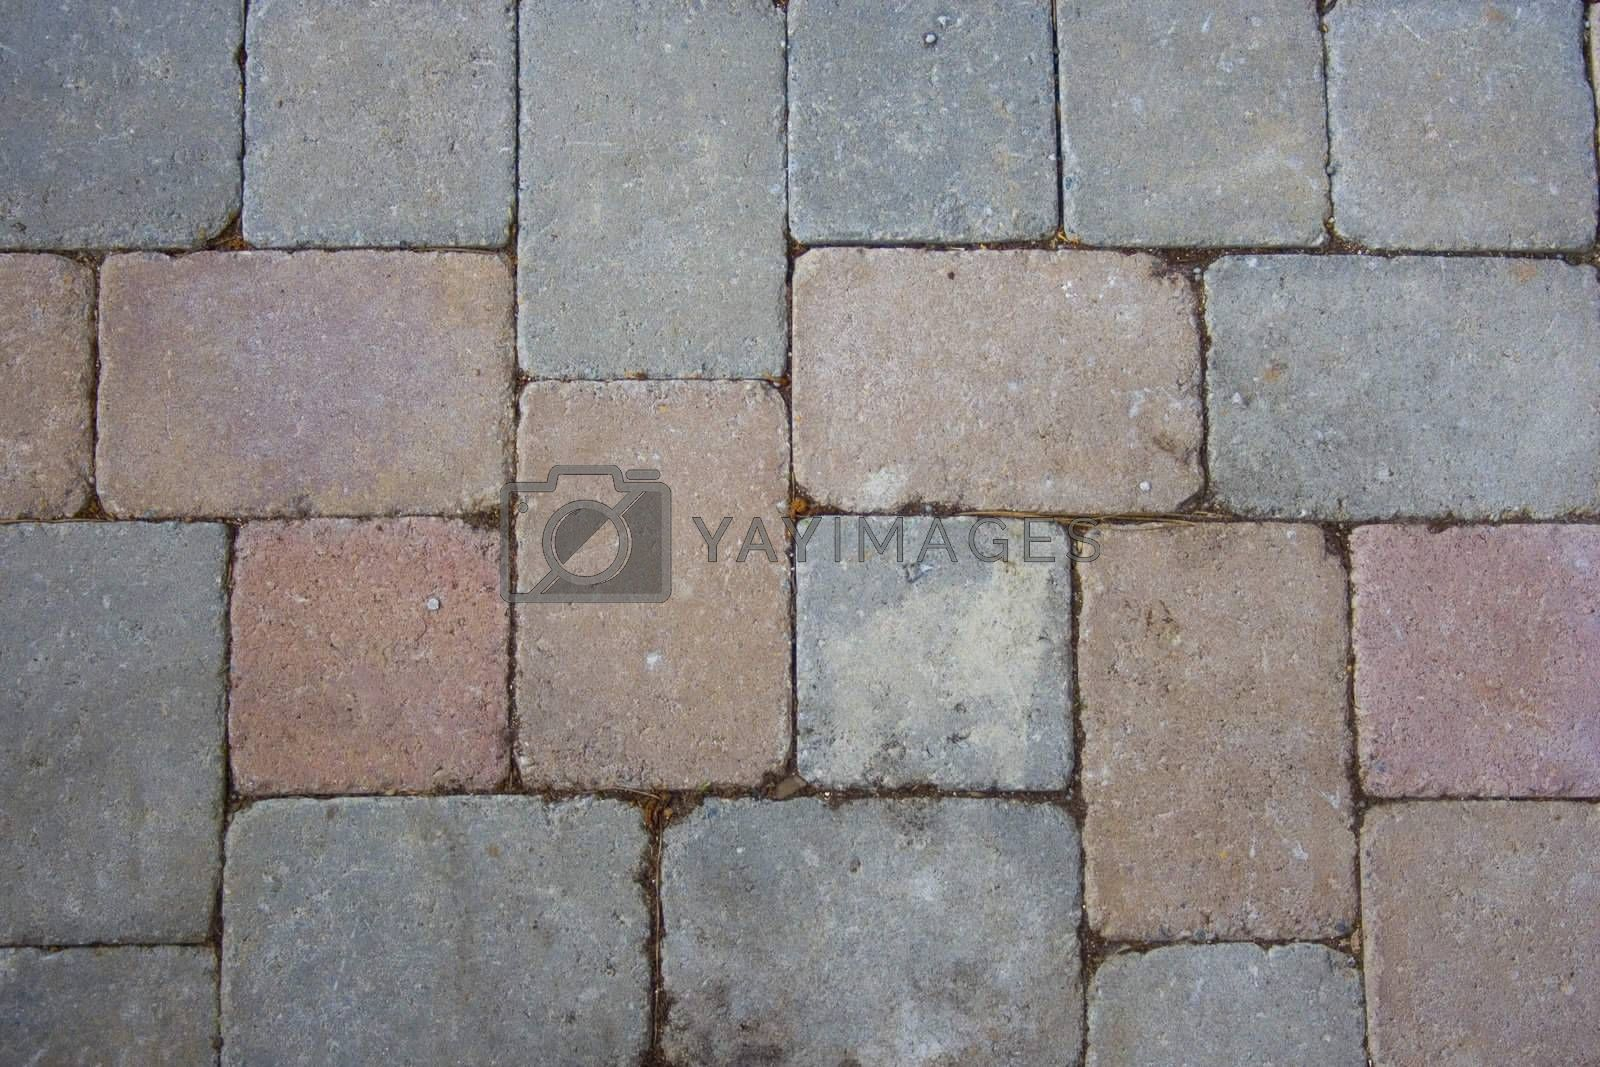 A pattern of bricks on the ground.